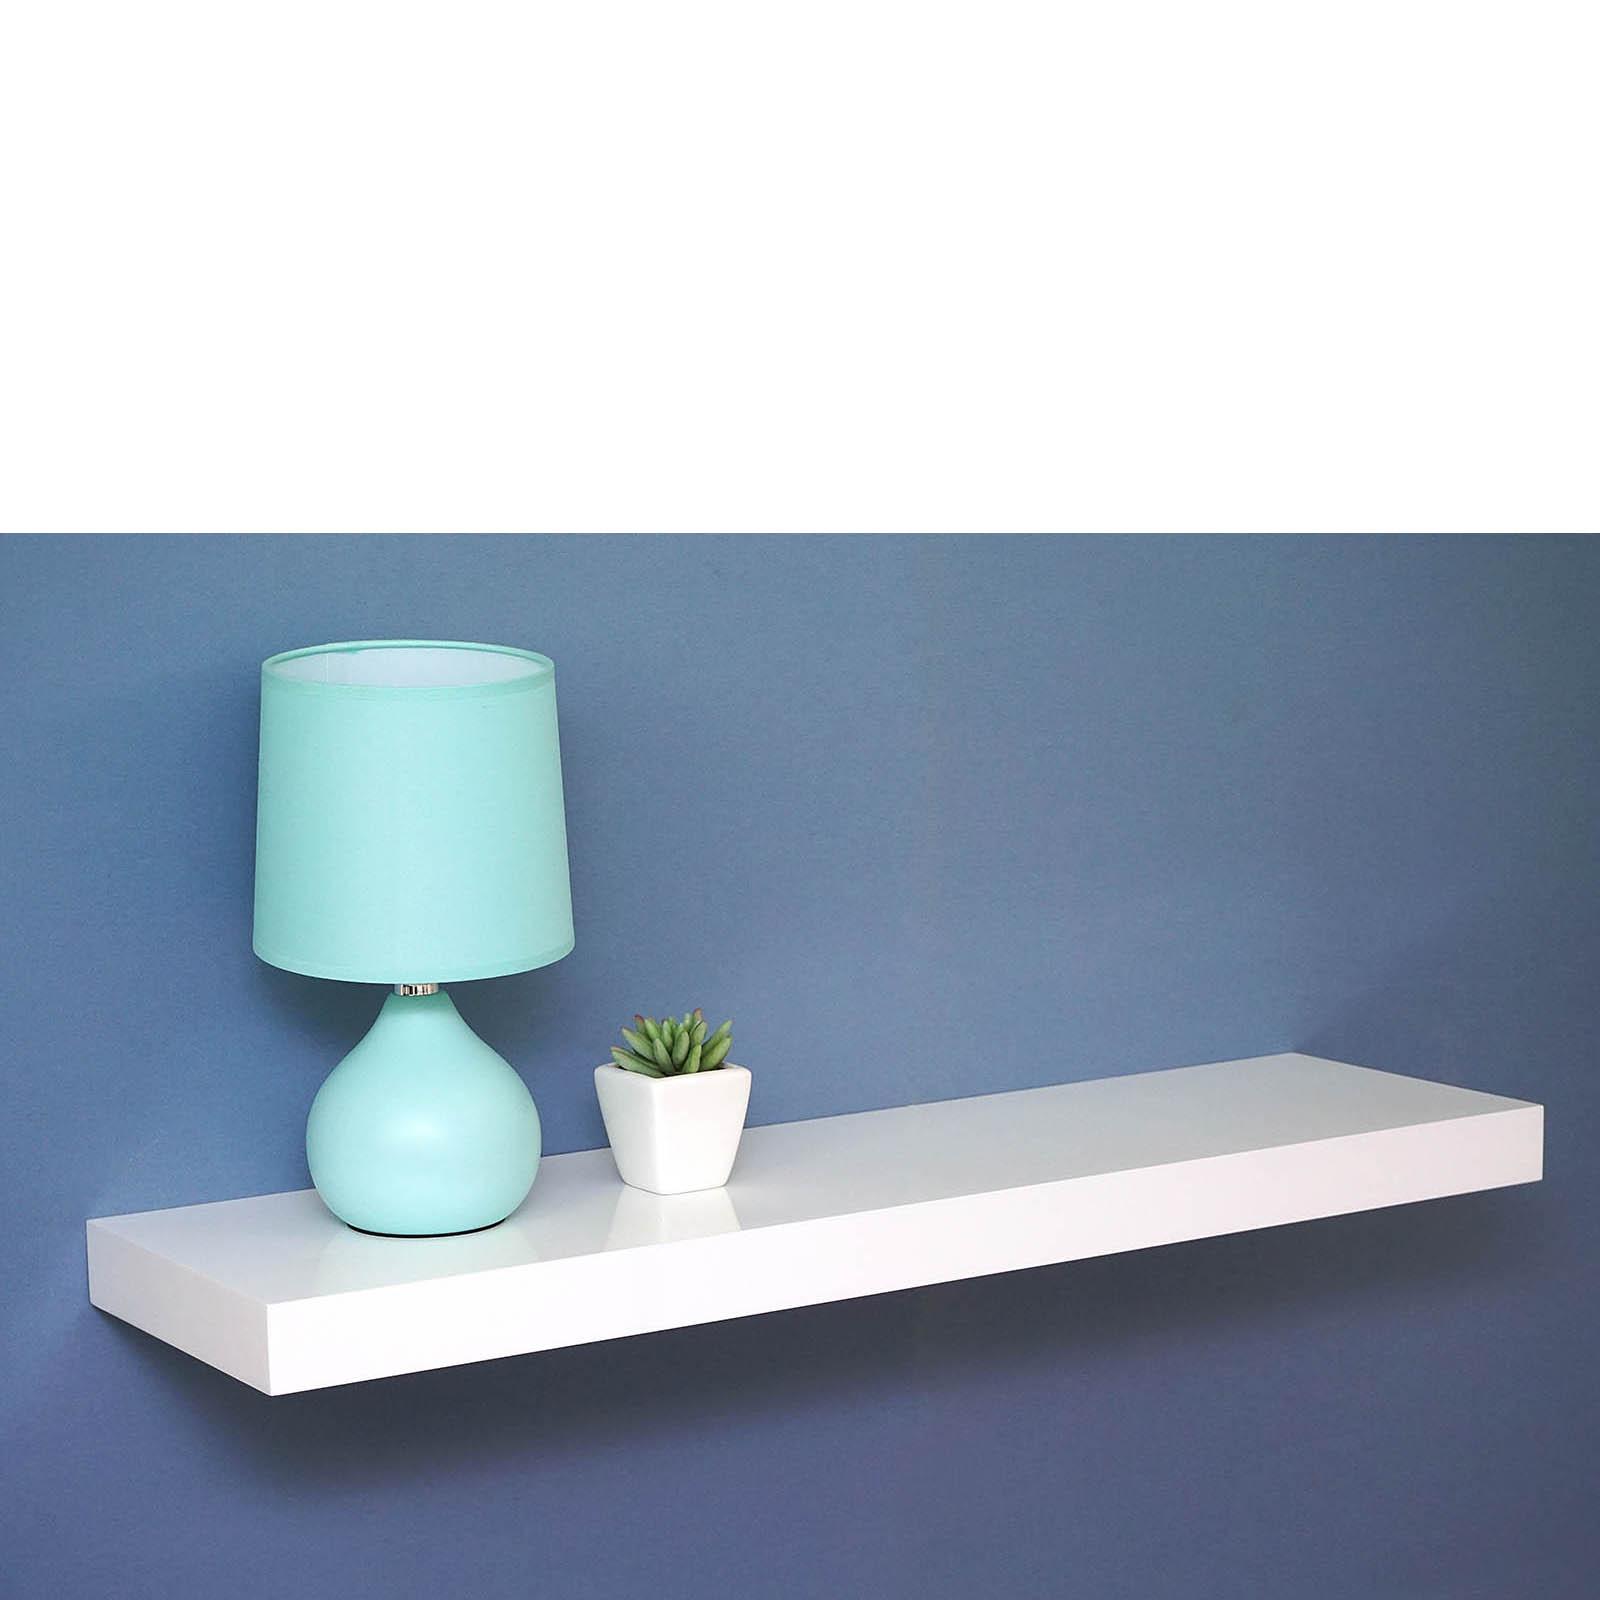 gloss white floating shelf mastershelf dressed thick shelves triangle hanging high small bathroom sink ideas wall brackets black shoe rack ikea billy bookcase shower diffuser